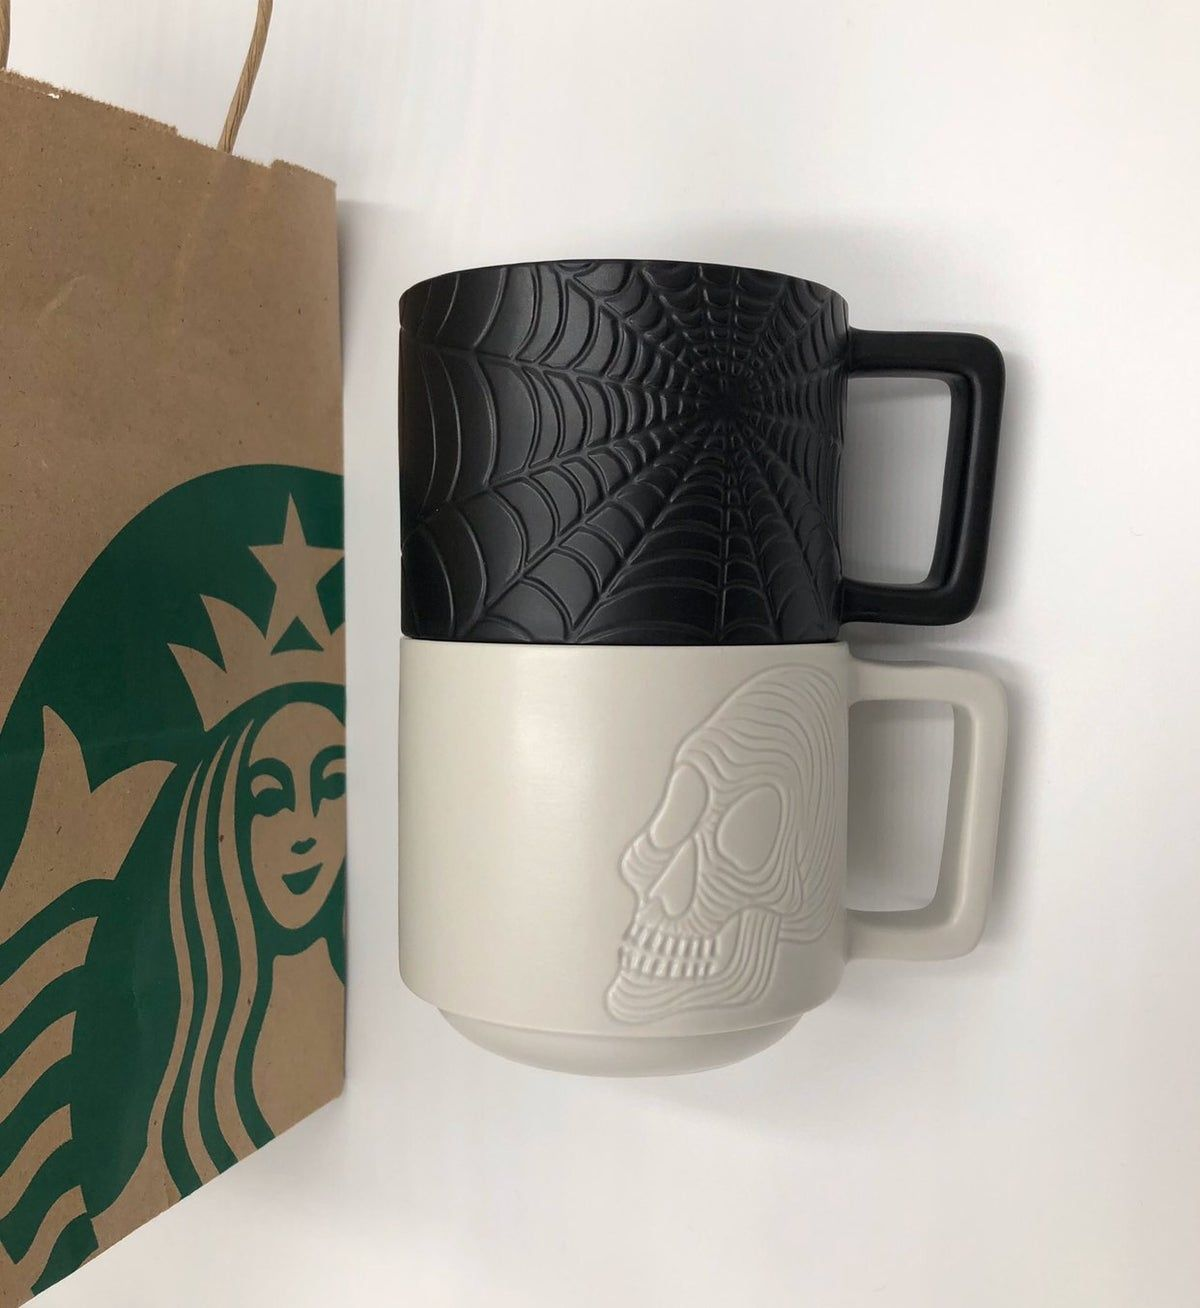 Pin by Toni Lynn on Mean muggin' in 2020 Starbucks mugs